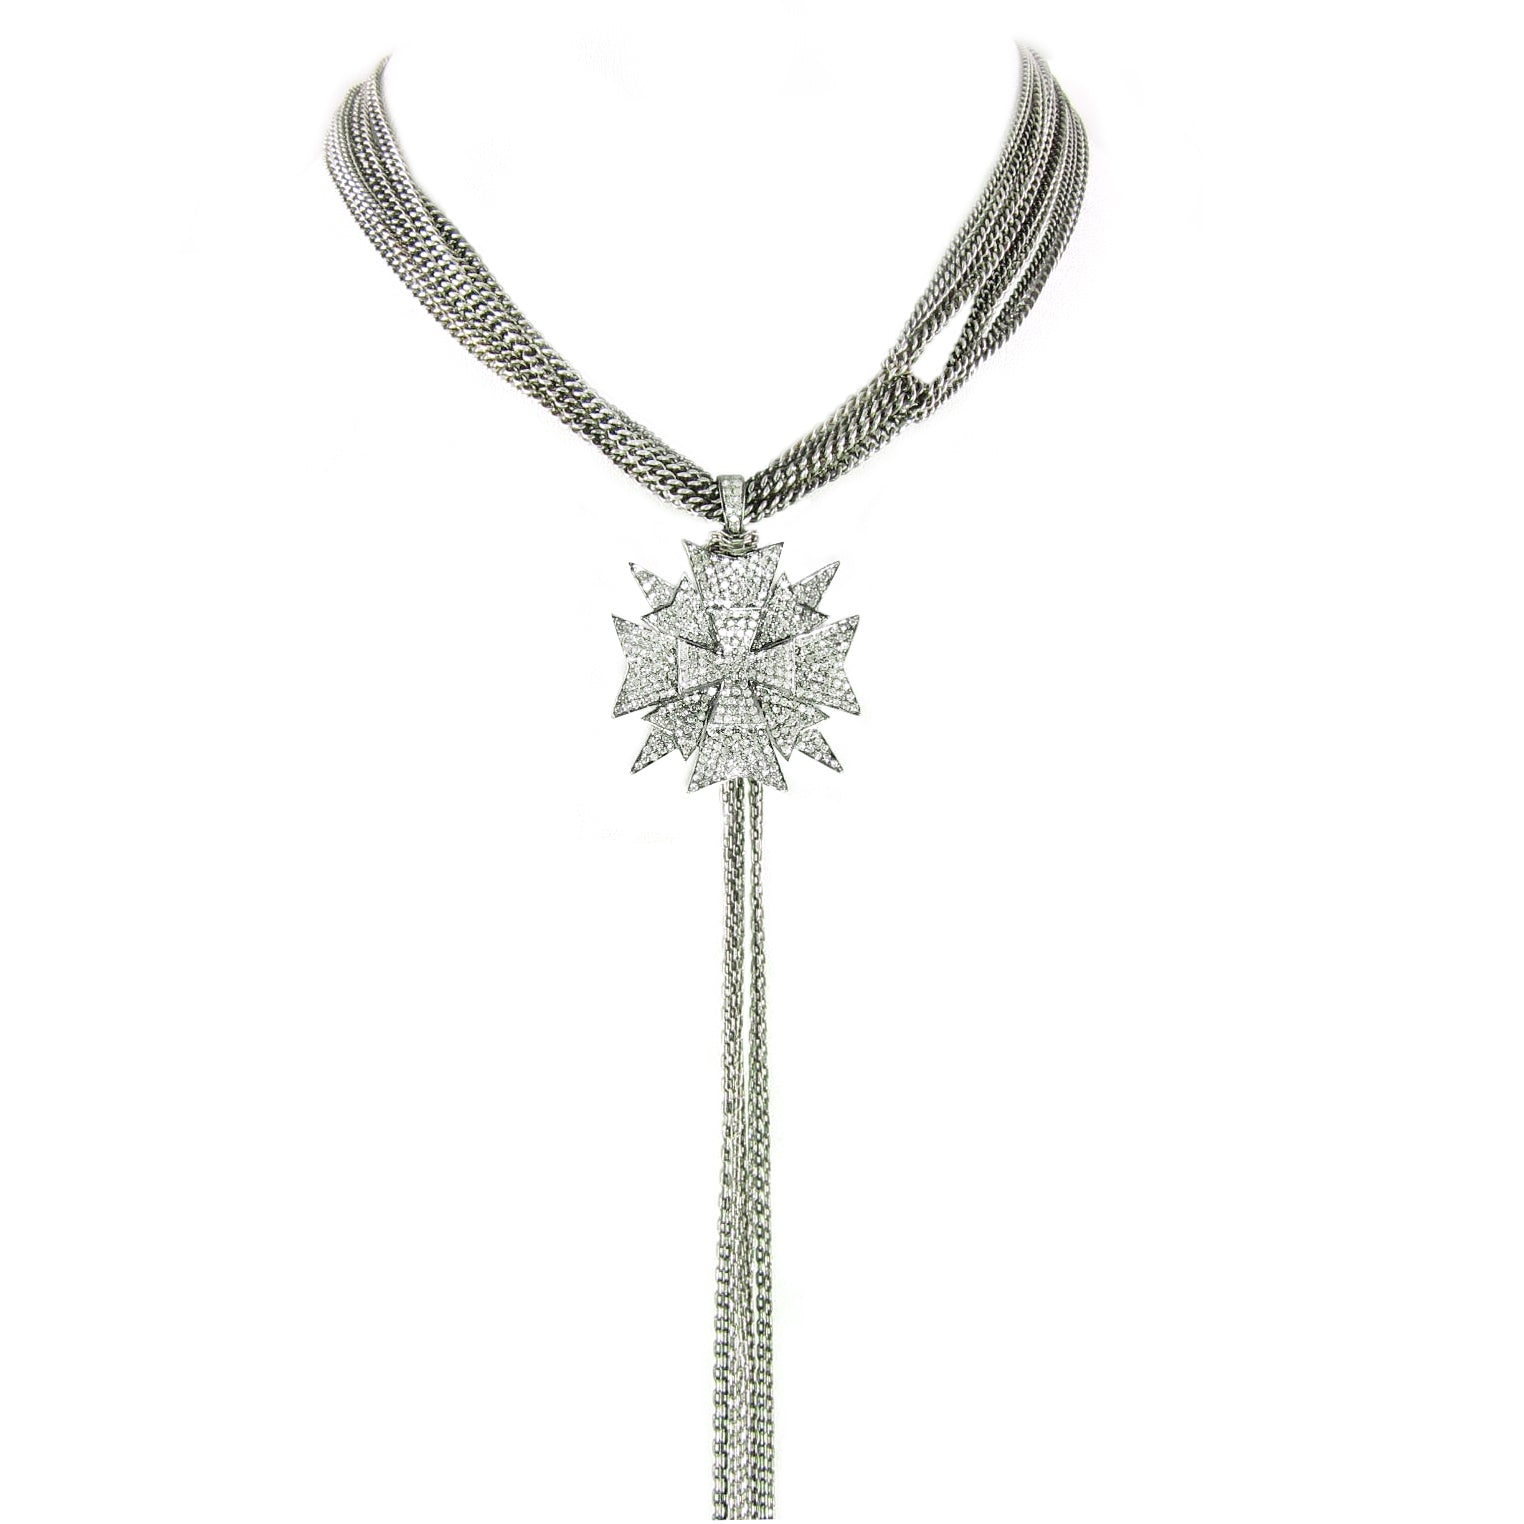 Unusual triple layered diamond maltese cross with long chain tassel.